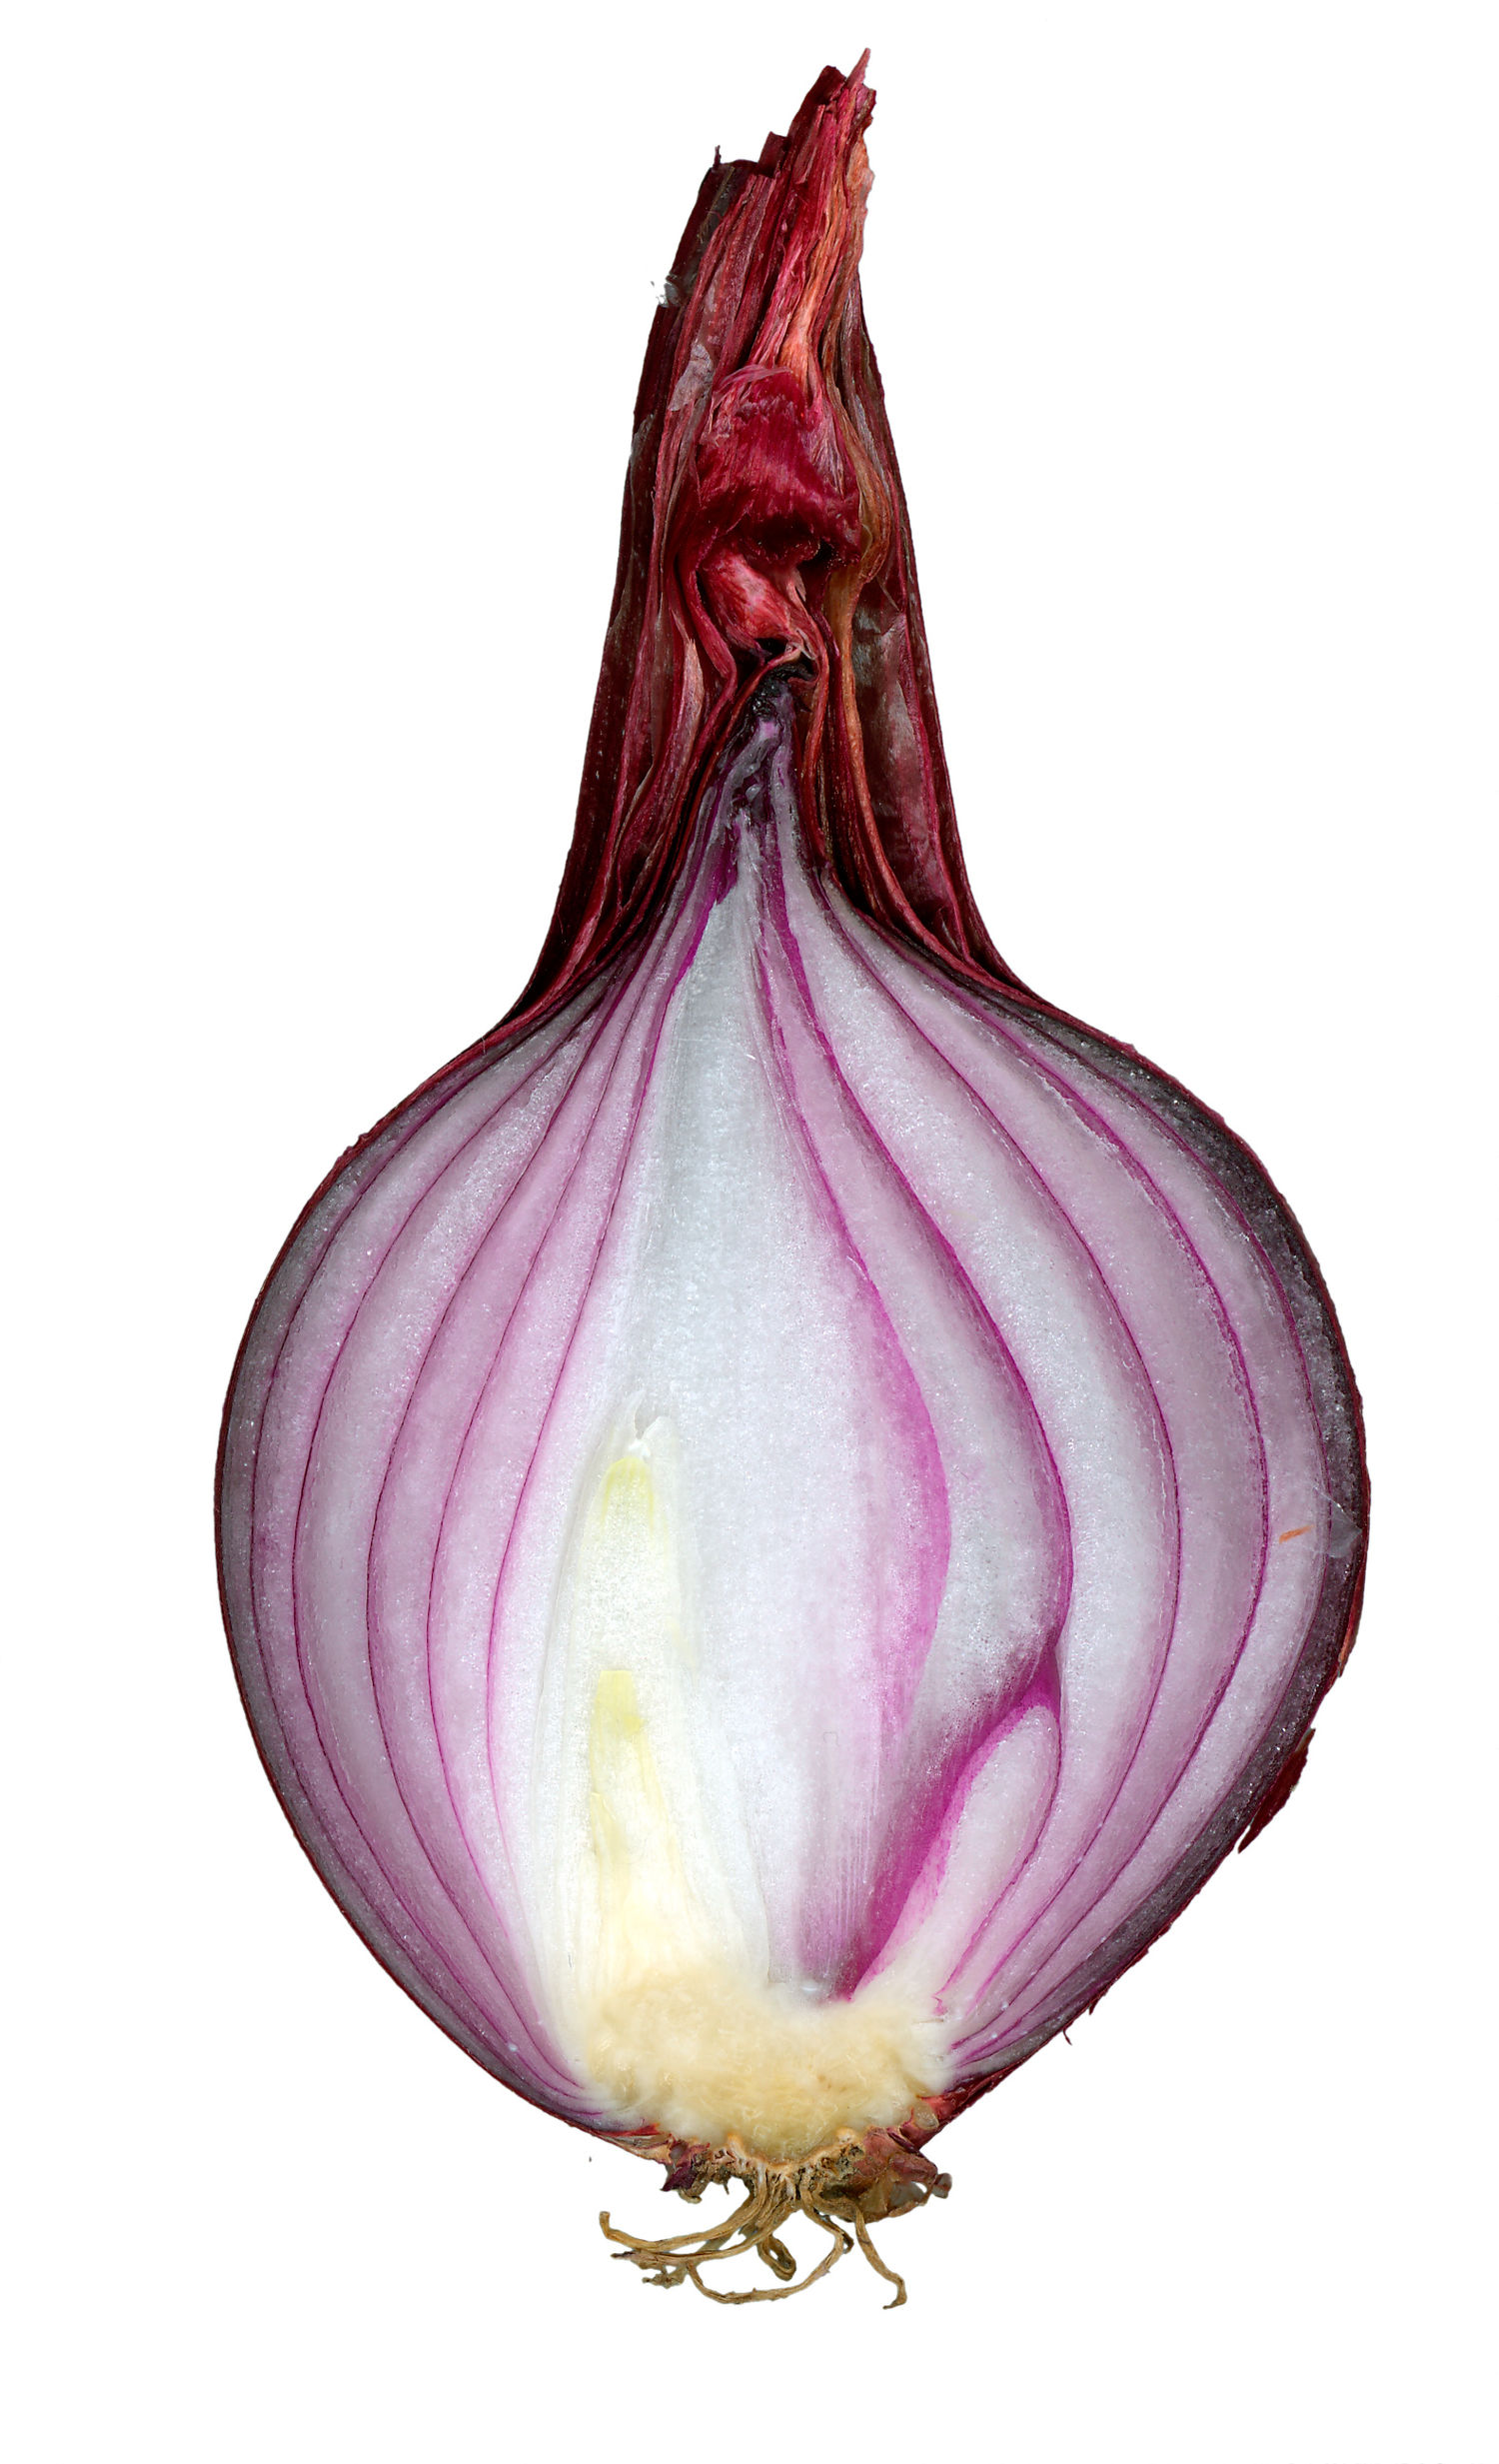 Red onion cut.jpg